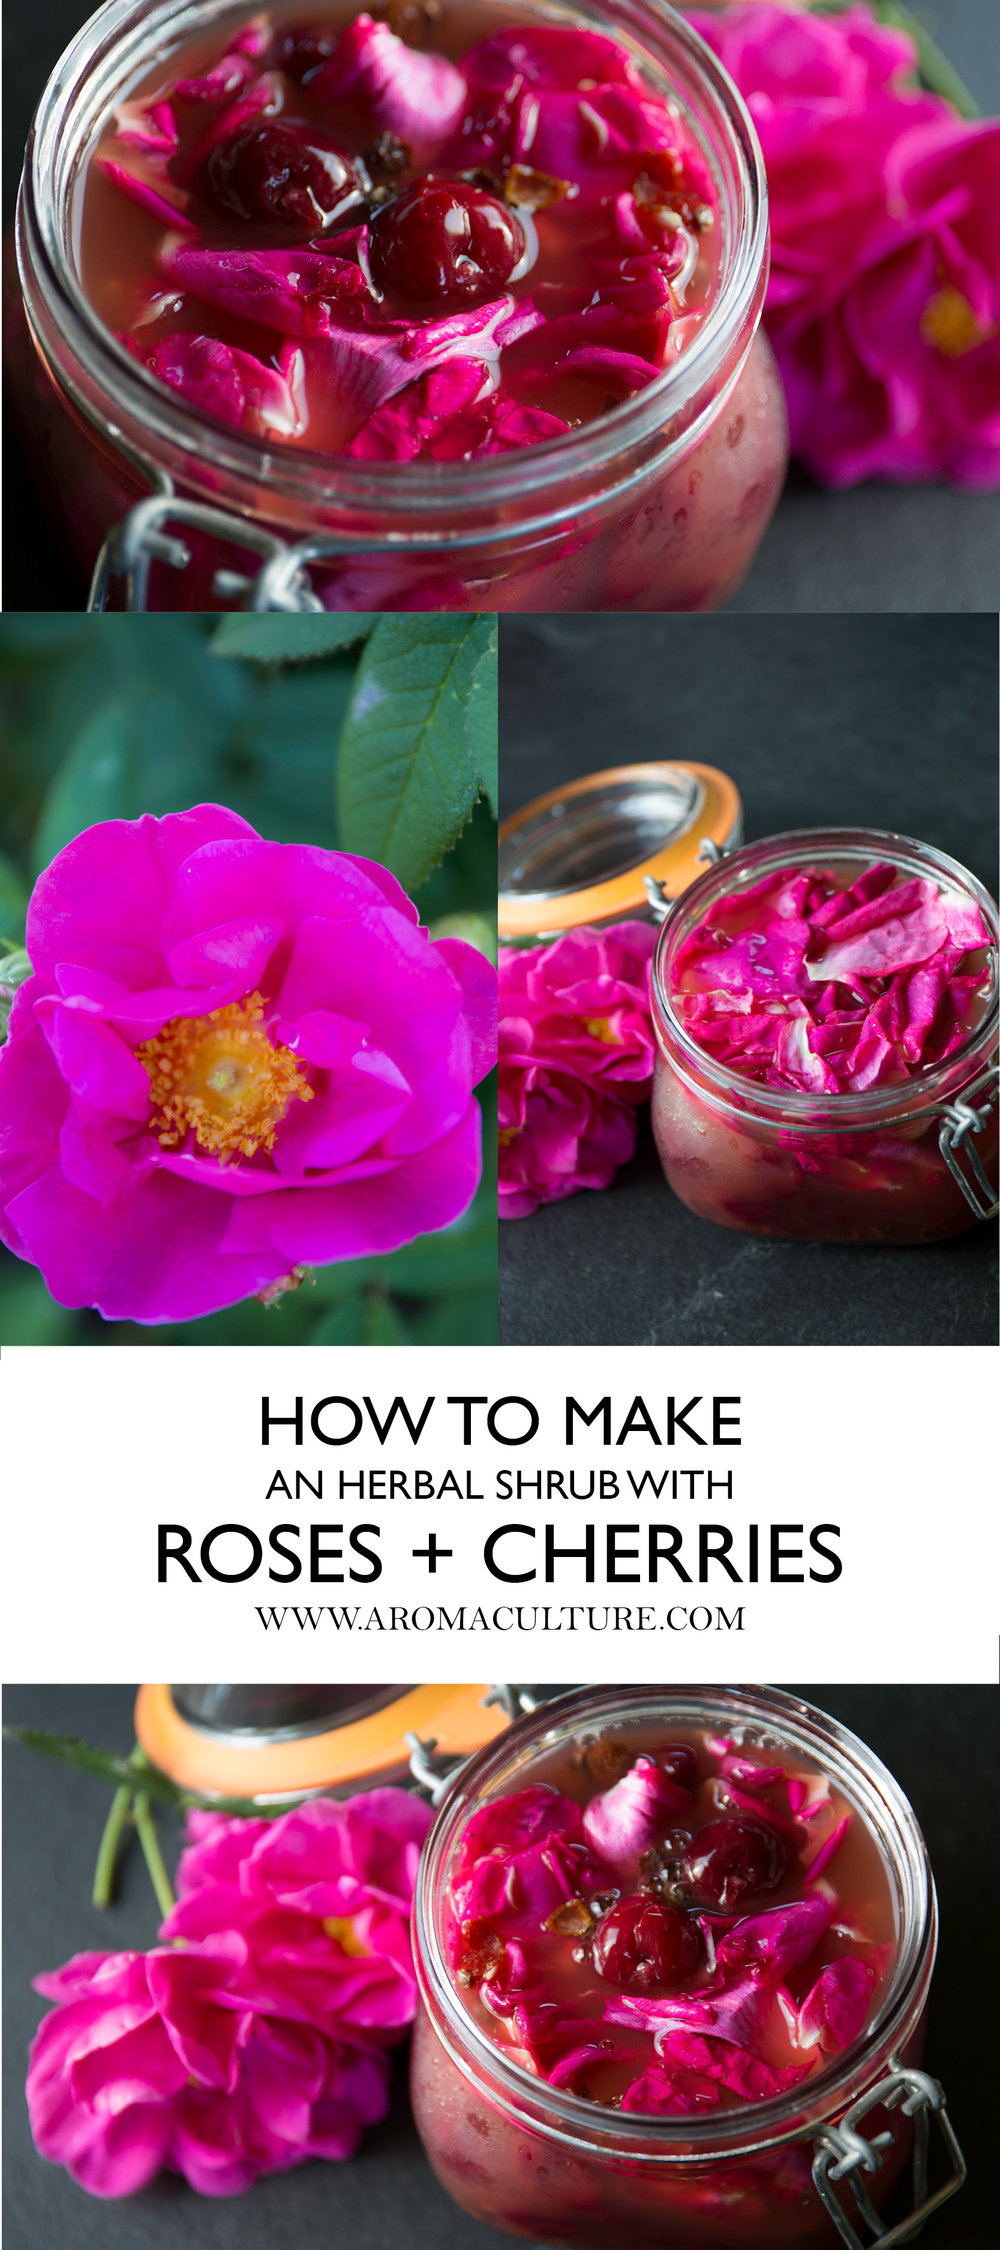 HOW TO MAKE AN HERBAL SHRUB WITH ROSES AND CHERRIES.jpg